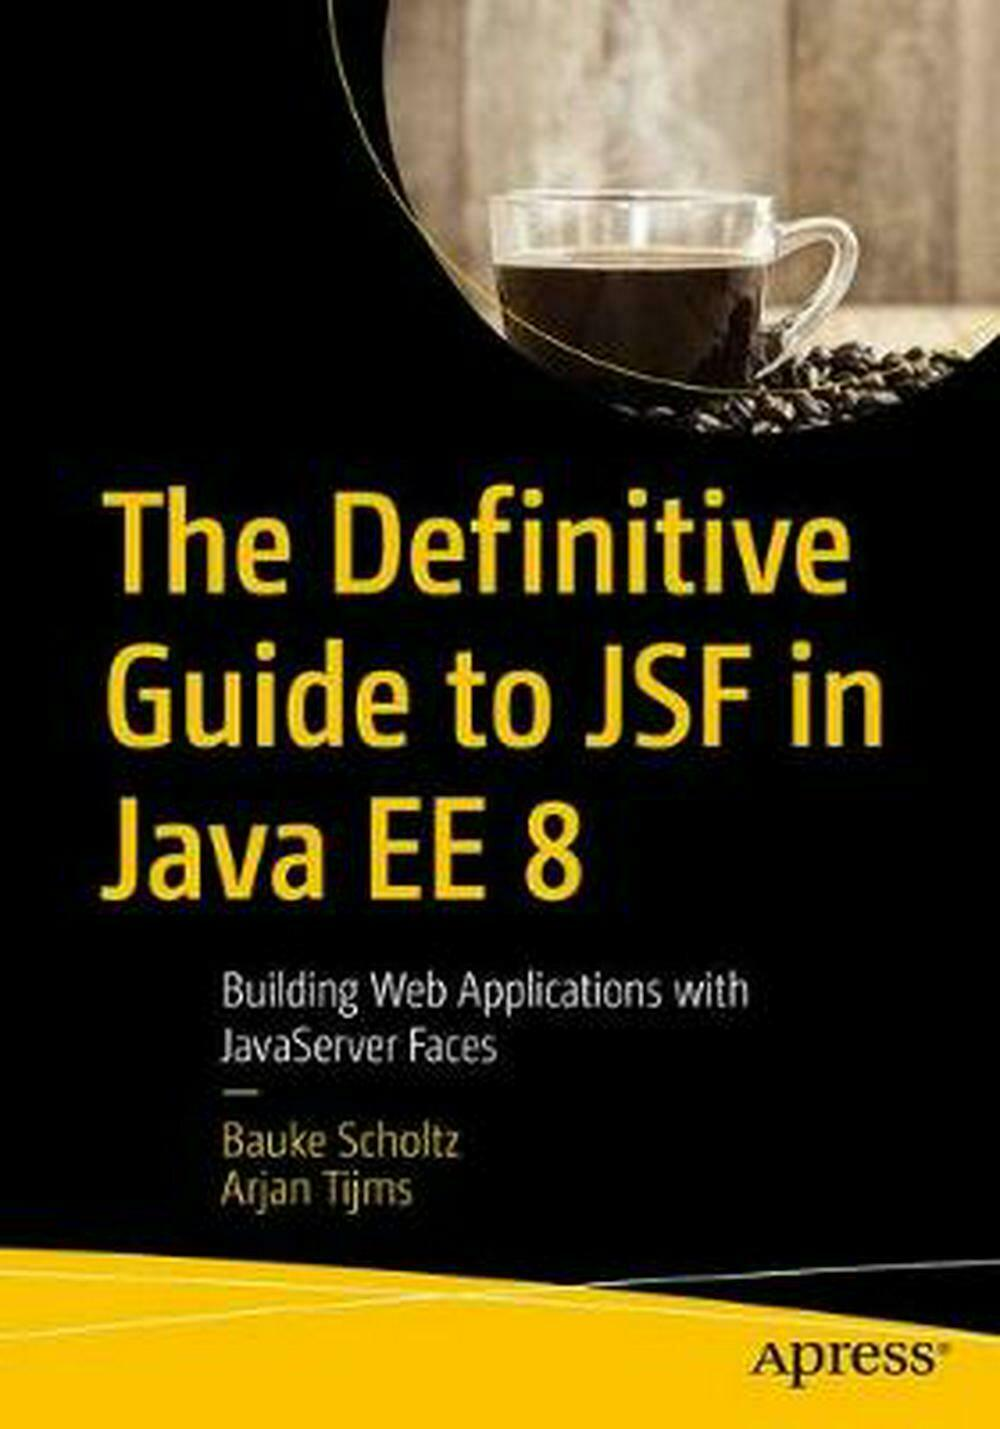 The Definitive Guide to JSF in Java EE 8: Building Web Applications with JavaSer |